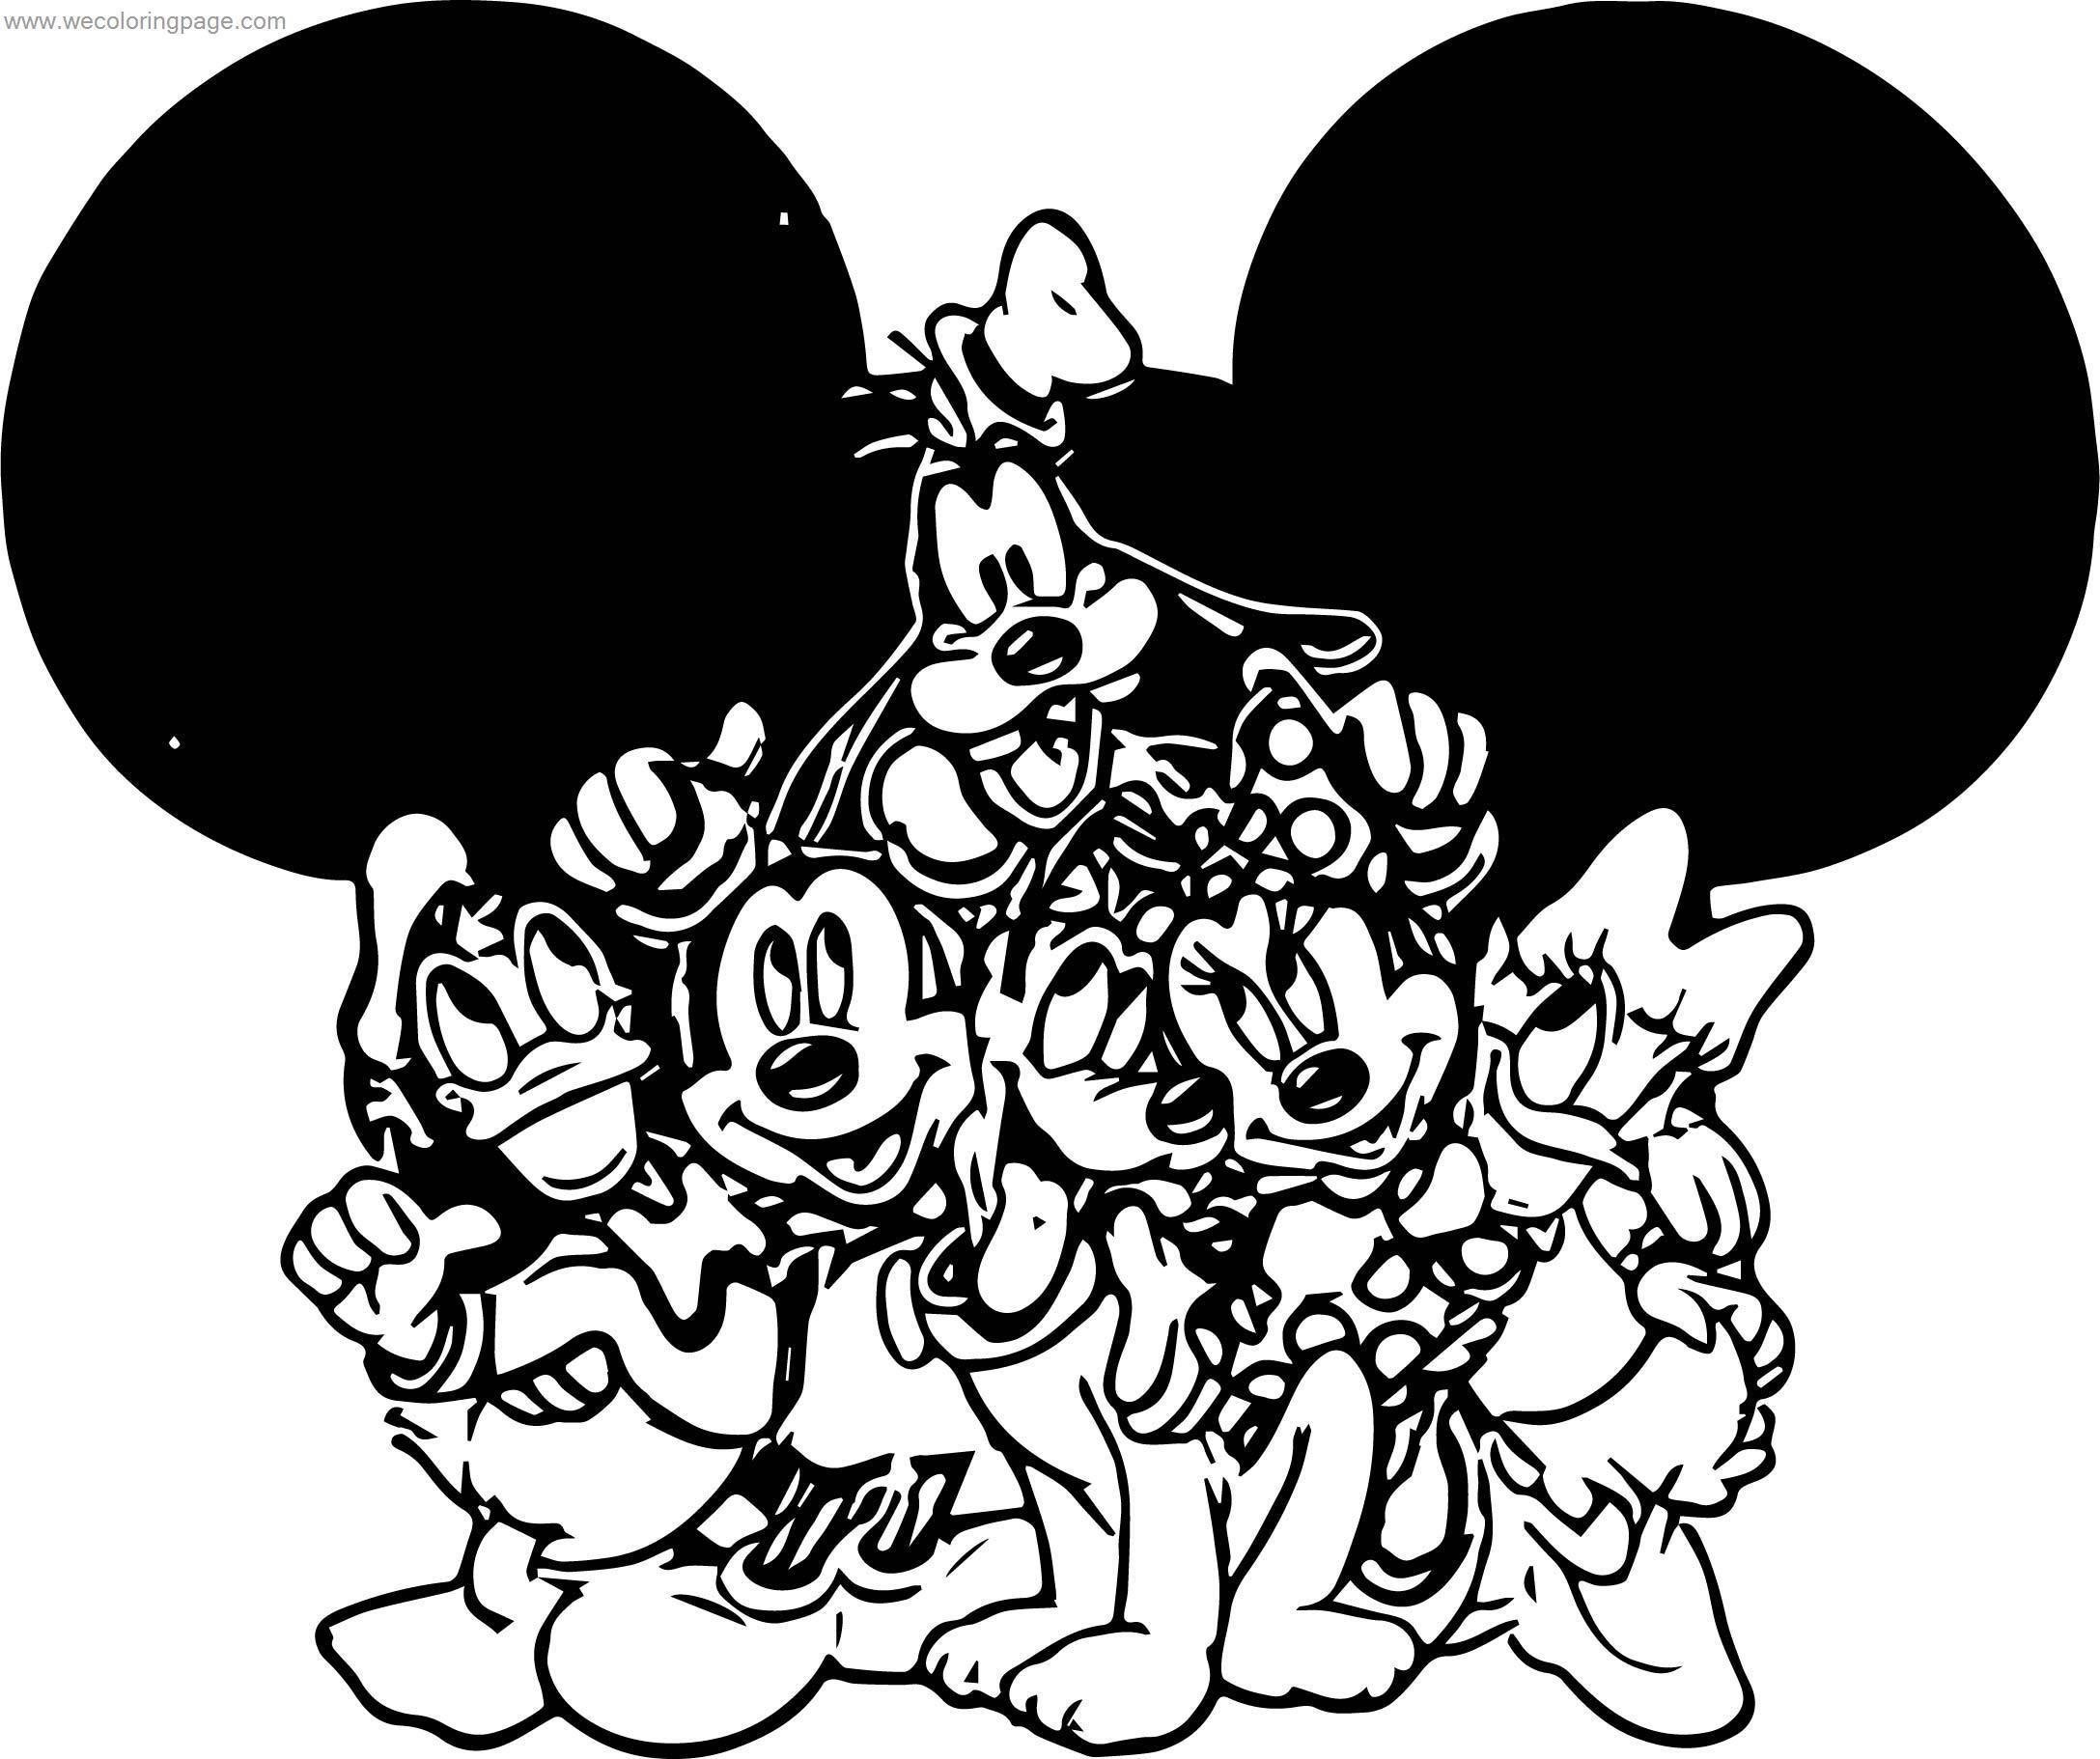 Mickey Minnie Donald Dark Goofy Pluto Birthday Gift Coloring Page